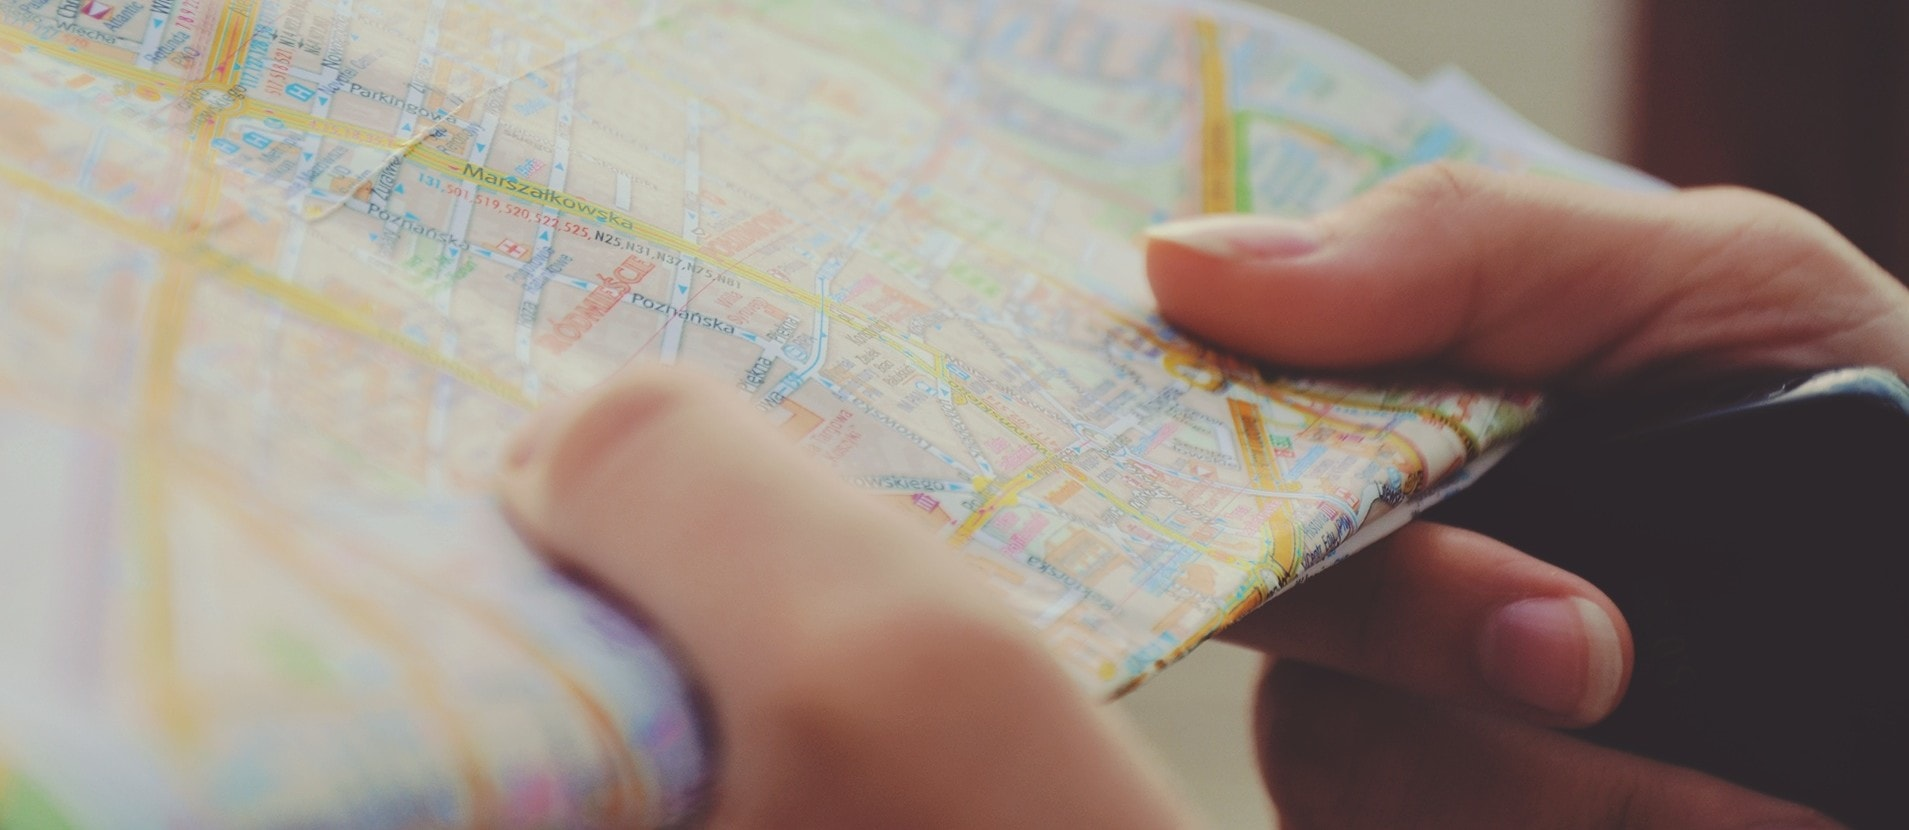 How to add a link to Google Maps with directions